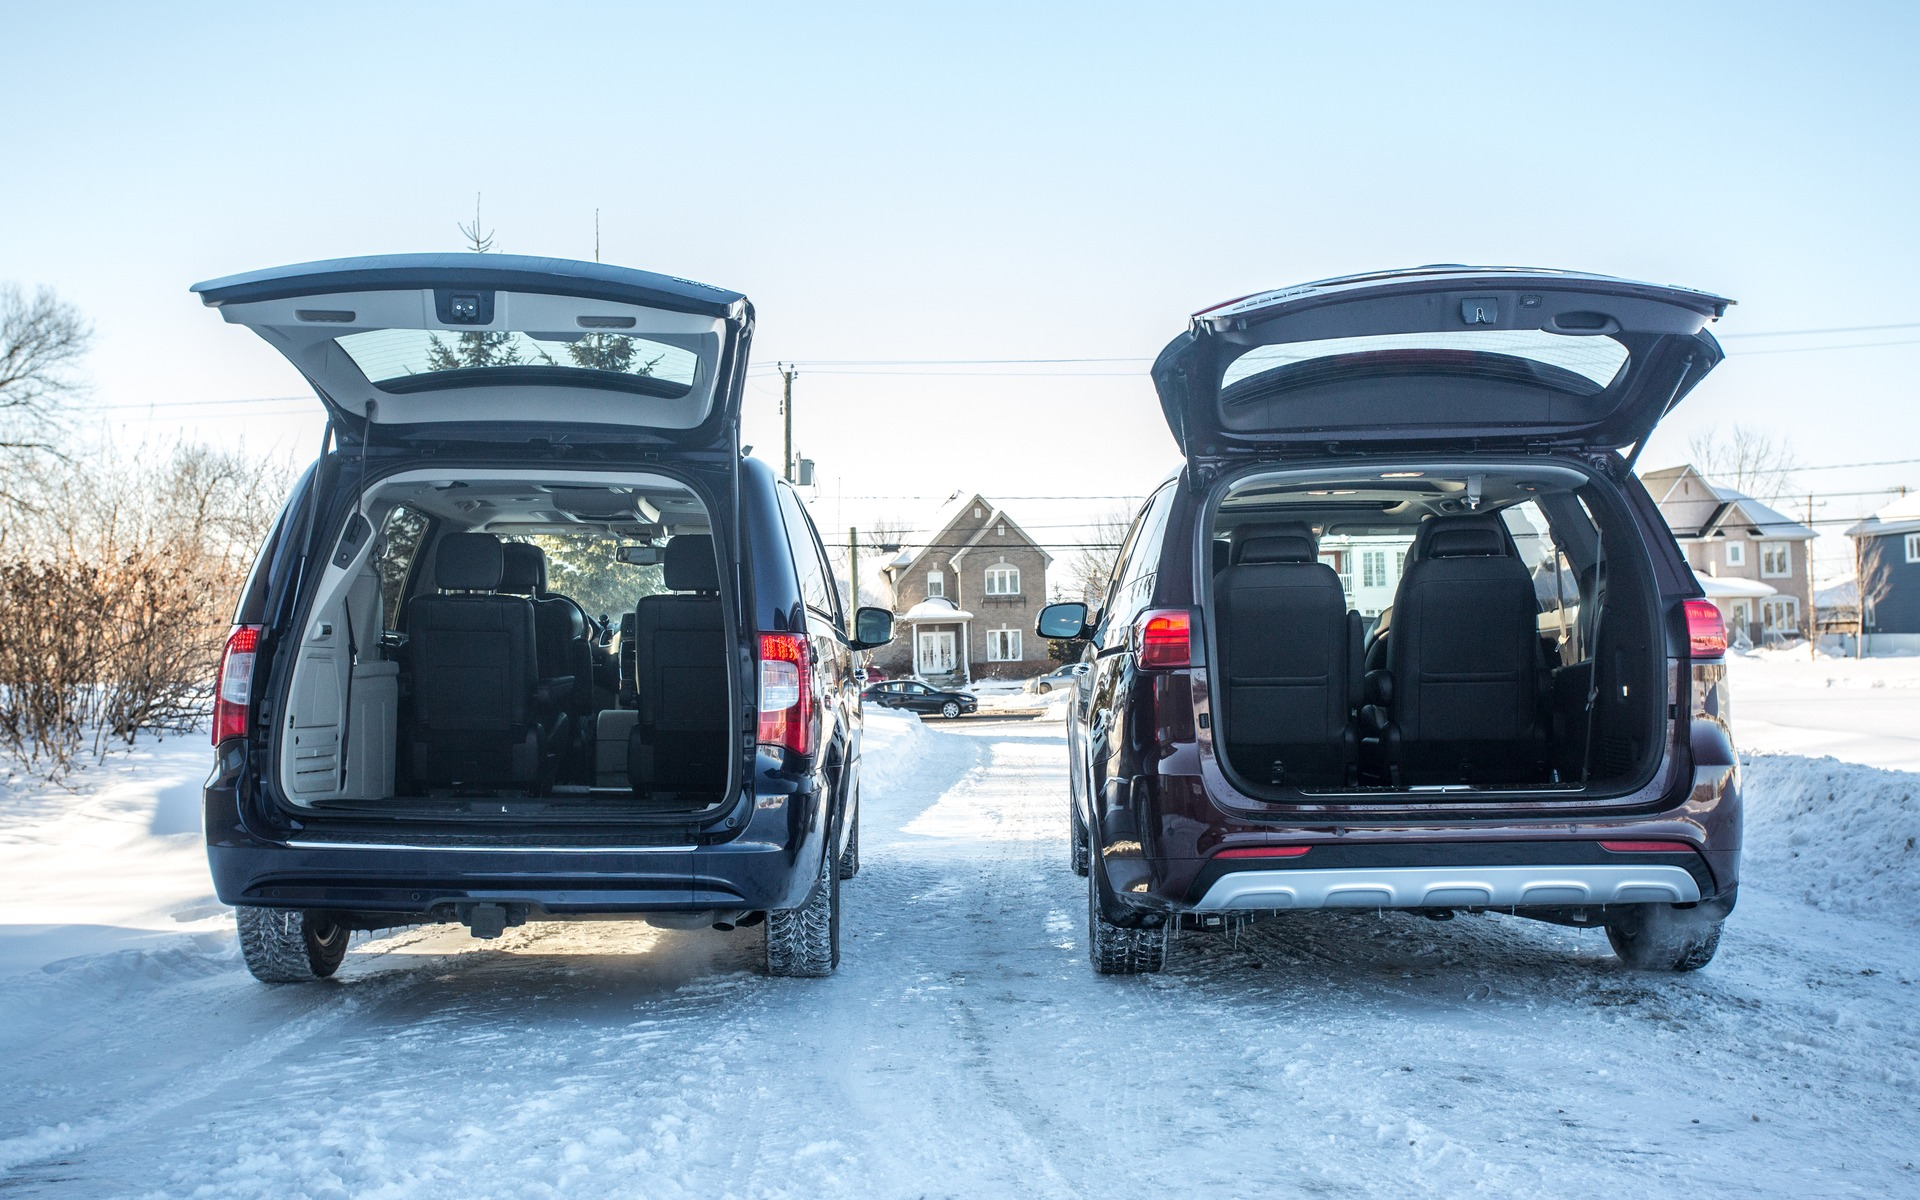 Used Chrysler Town And Country >> 2015 Kia Sedona Vs 2015 Chrysler Town & Country: A Tale Of Two Minivans - 4/27